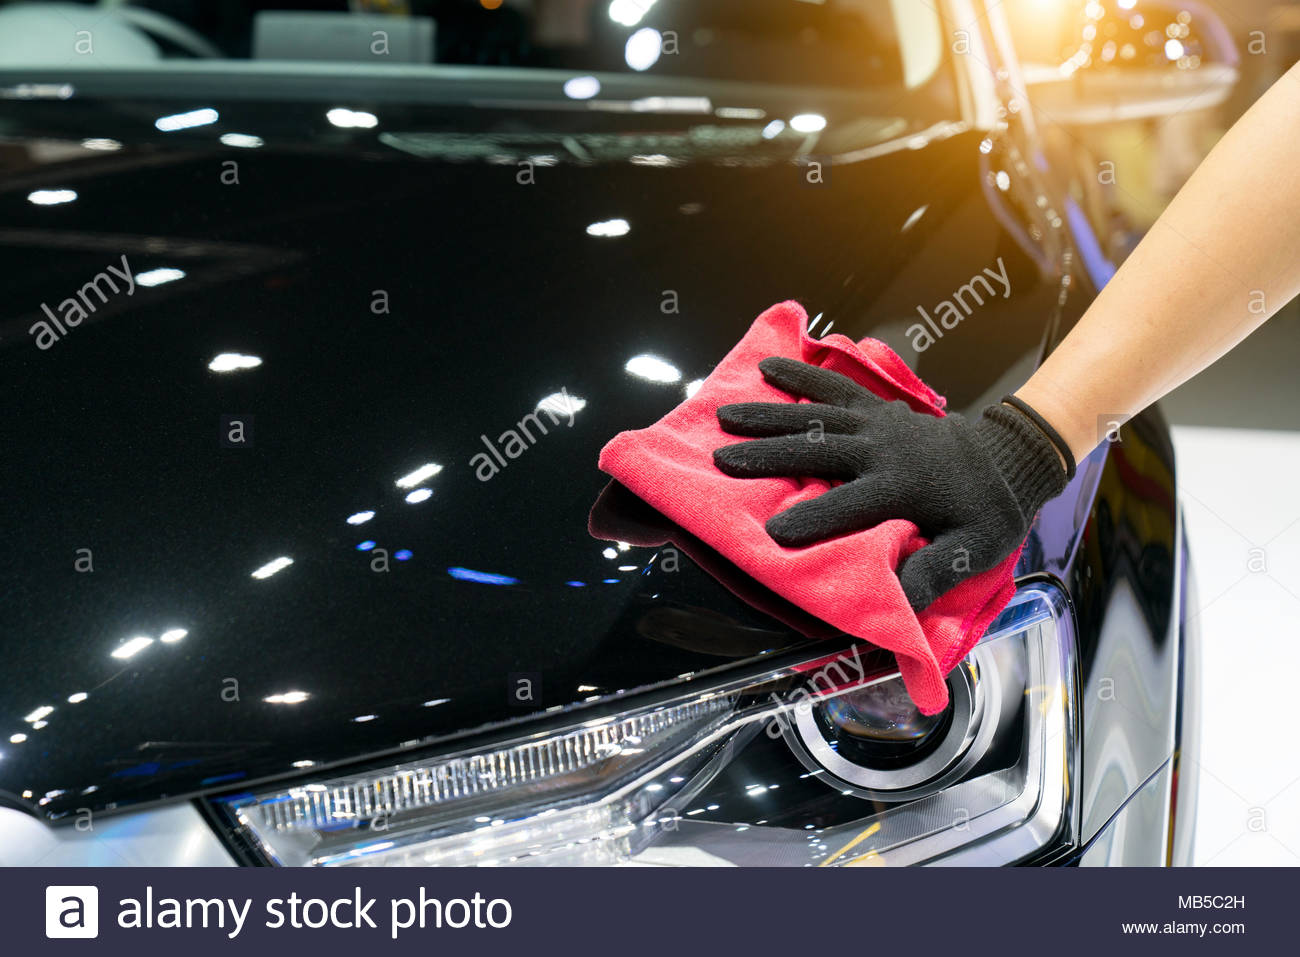 Car detailing - the man holds the microfiber in hand and polishes the car. Selective focus. Stock Photo